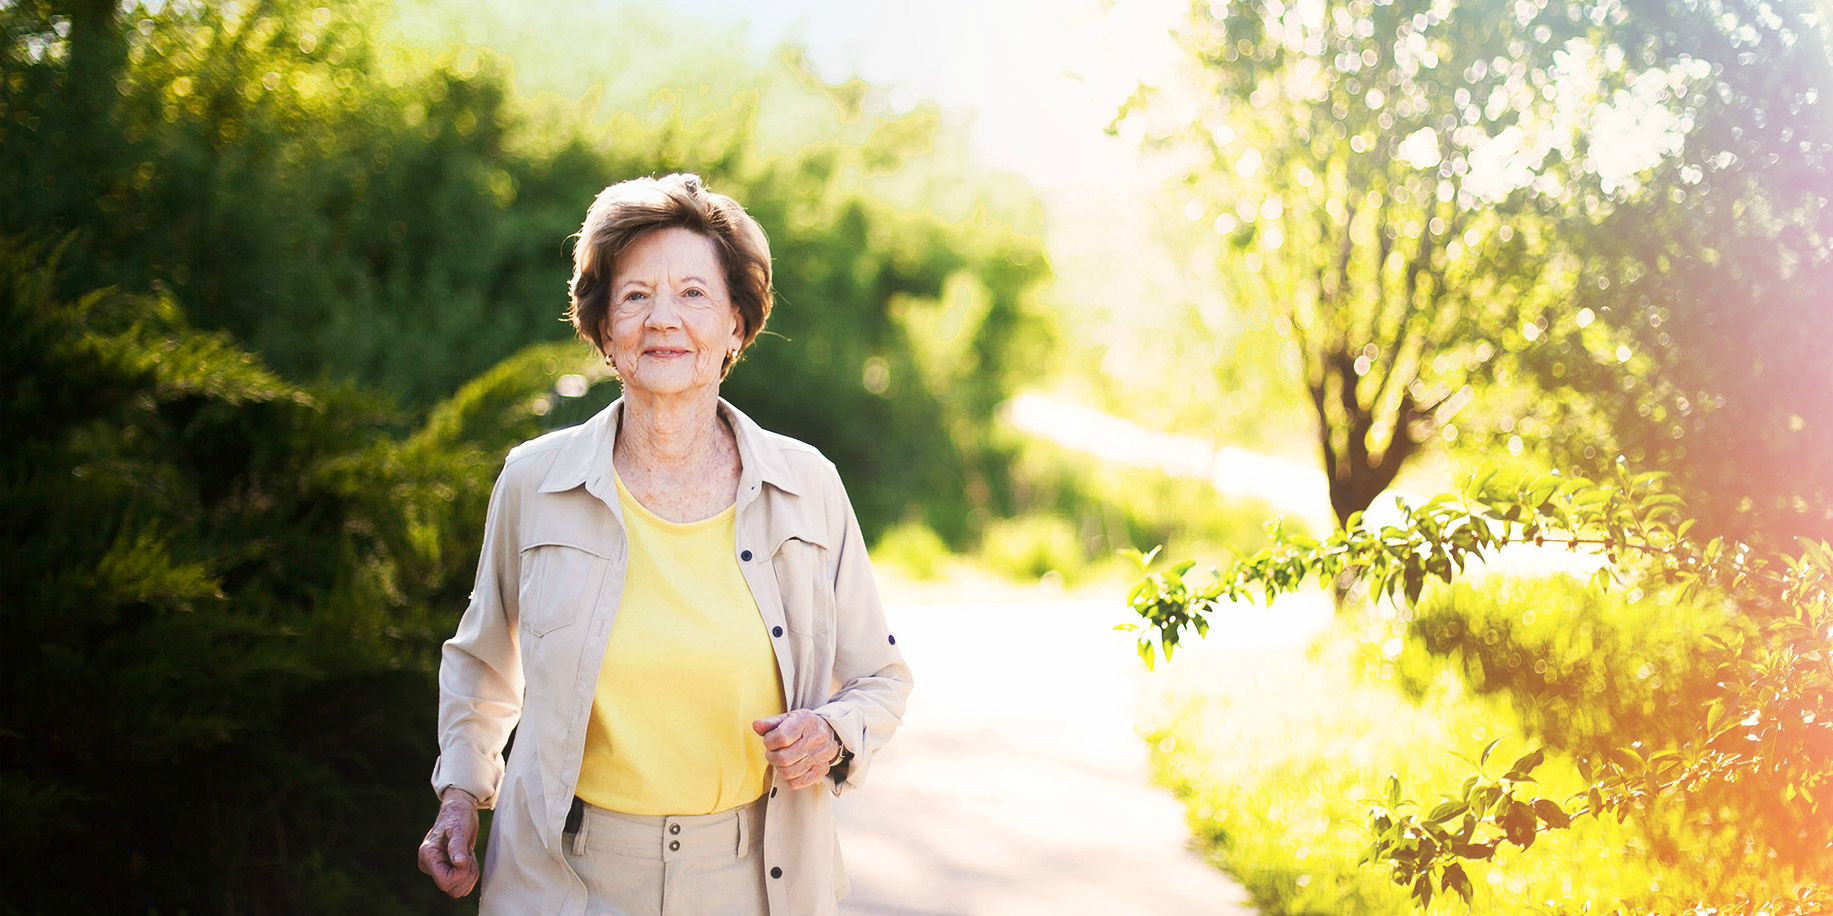 Tips to Staying Independent As You Age